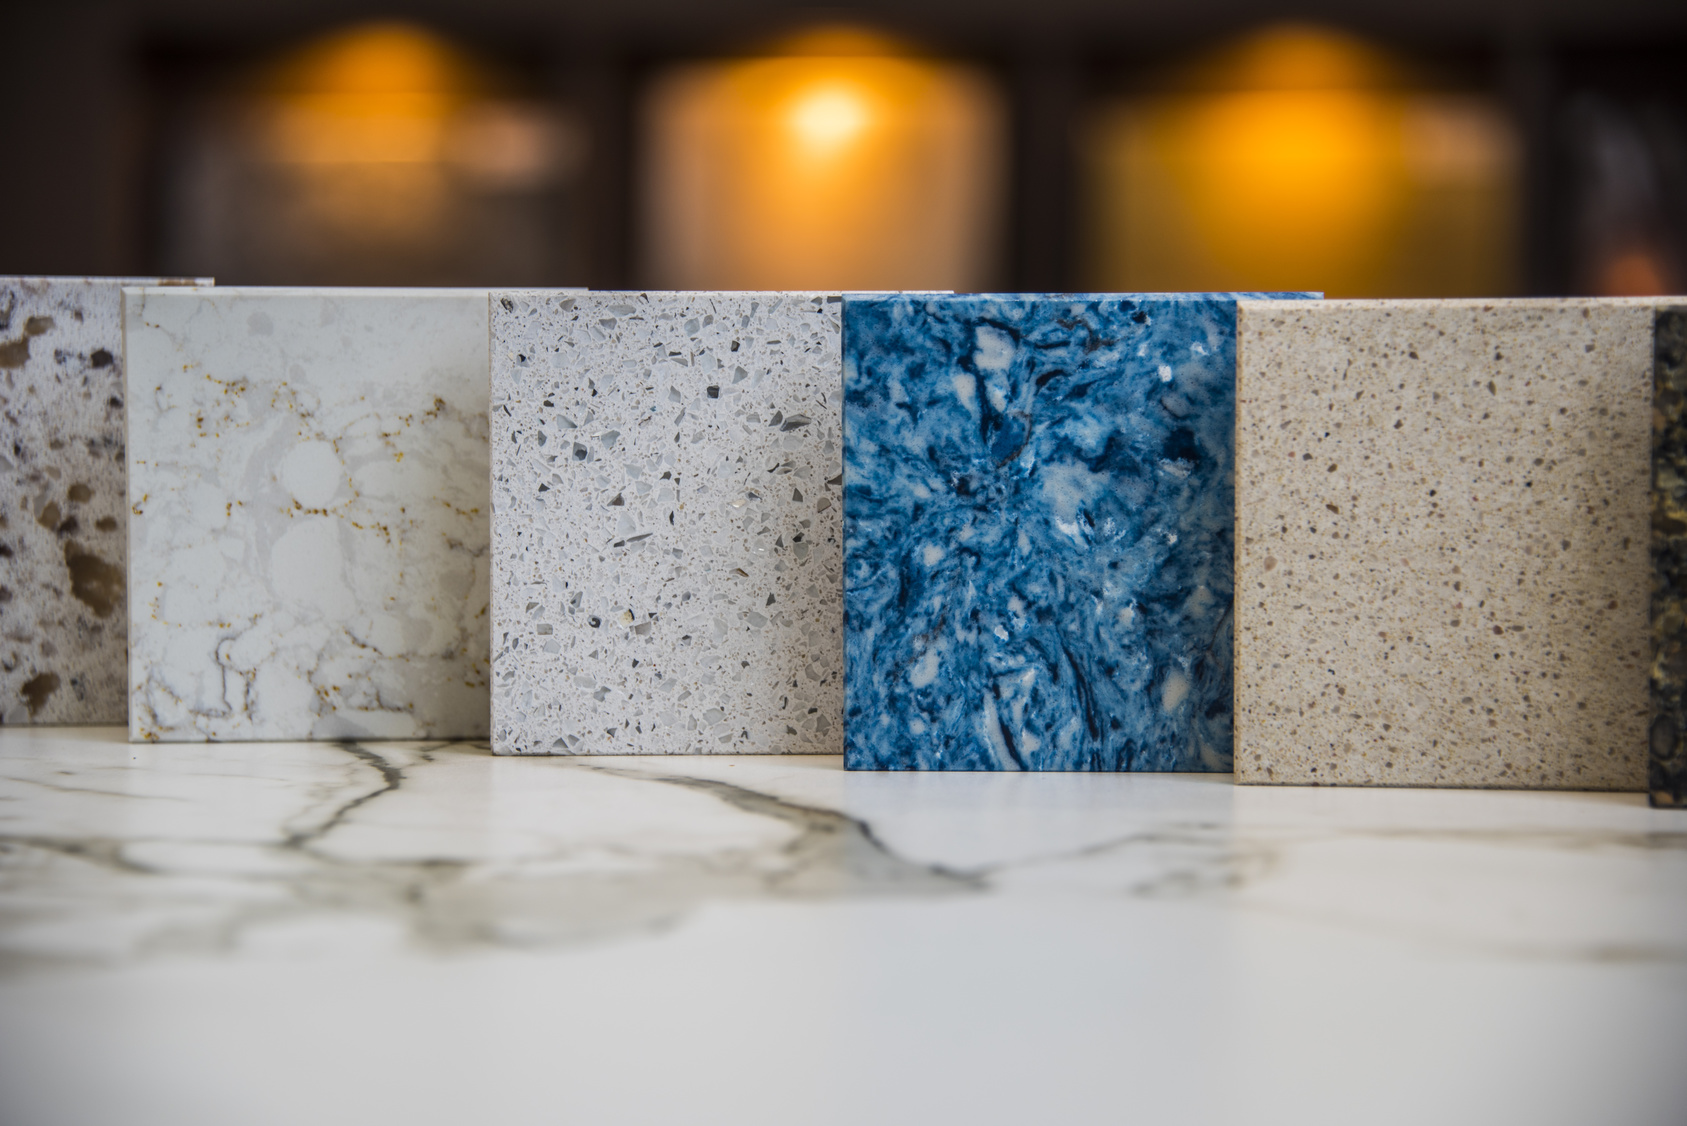 5 Backsplash Tile Designs to Consider for Your Kitchen